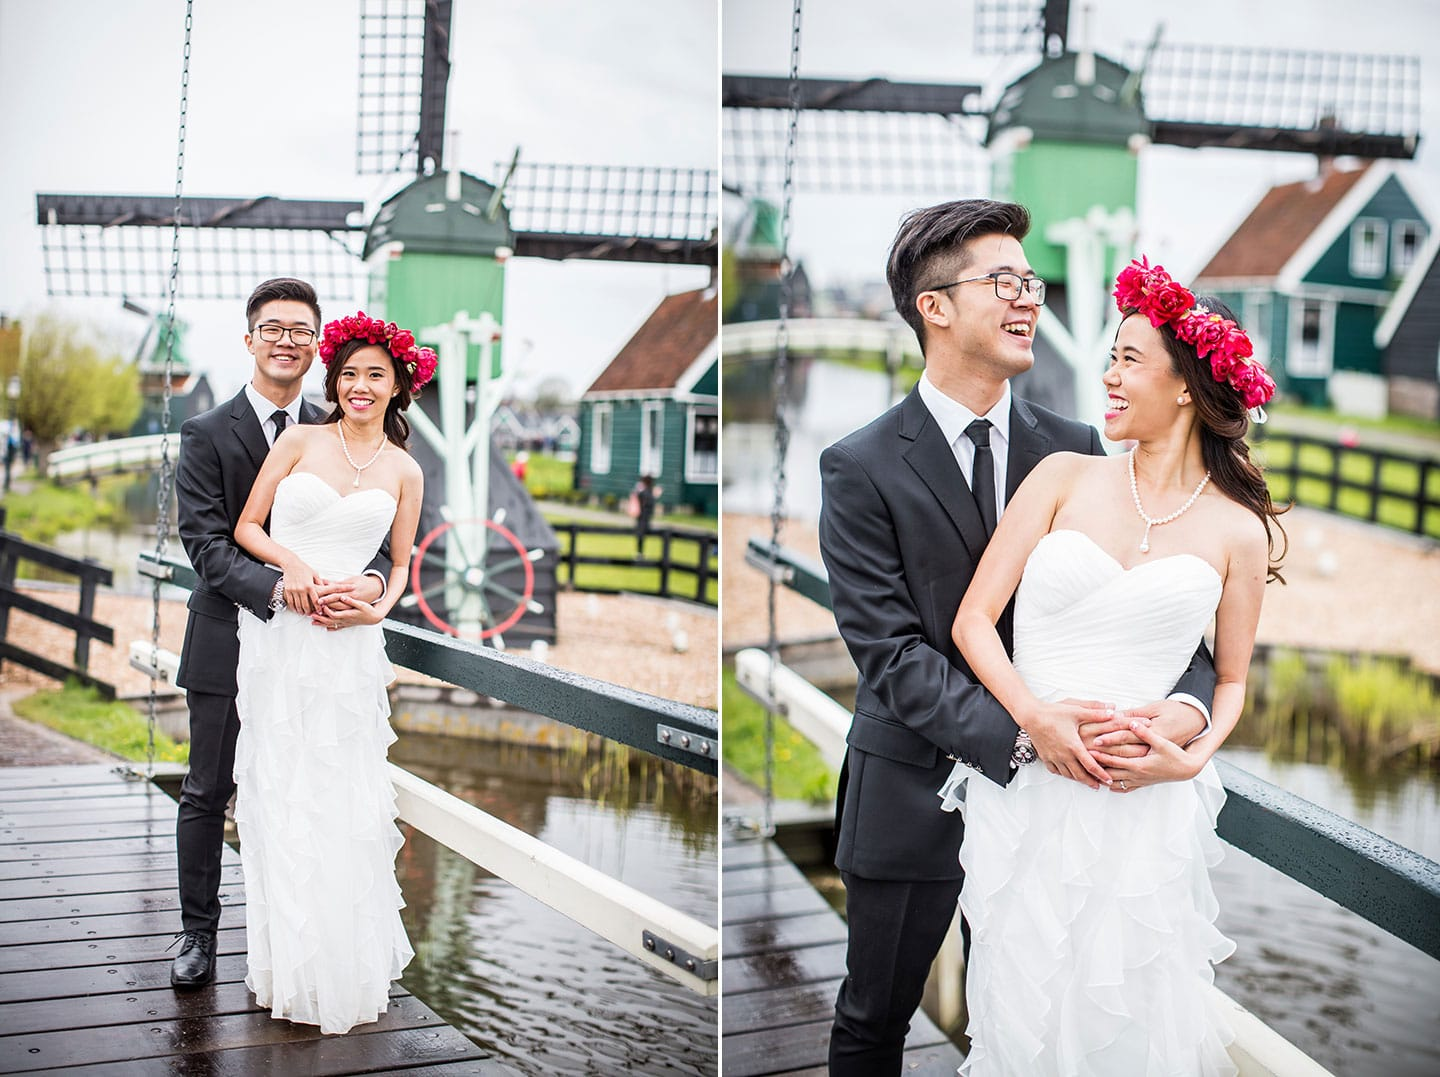 10-windmills-prewedding-Holland